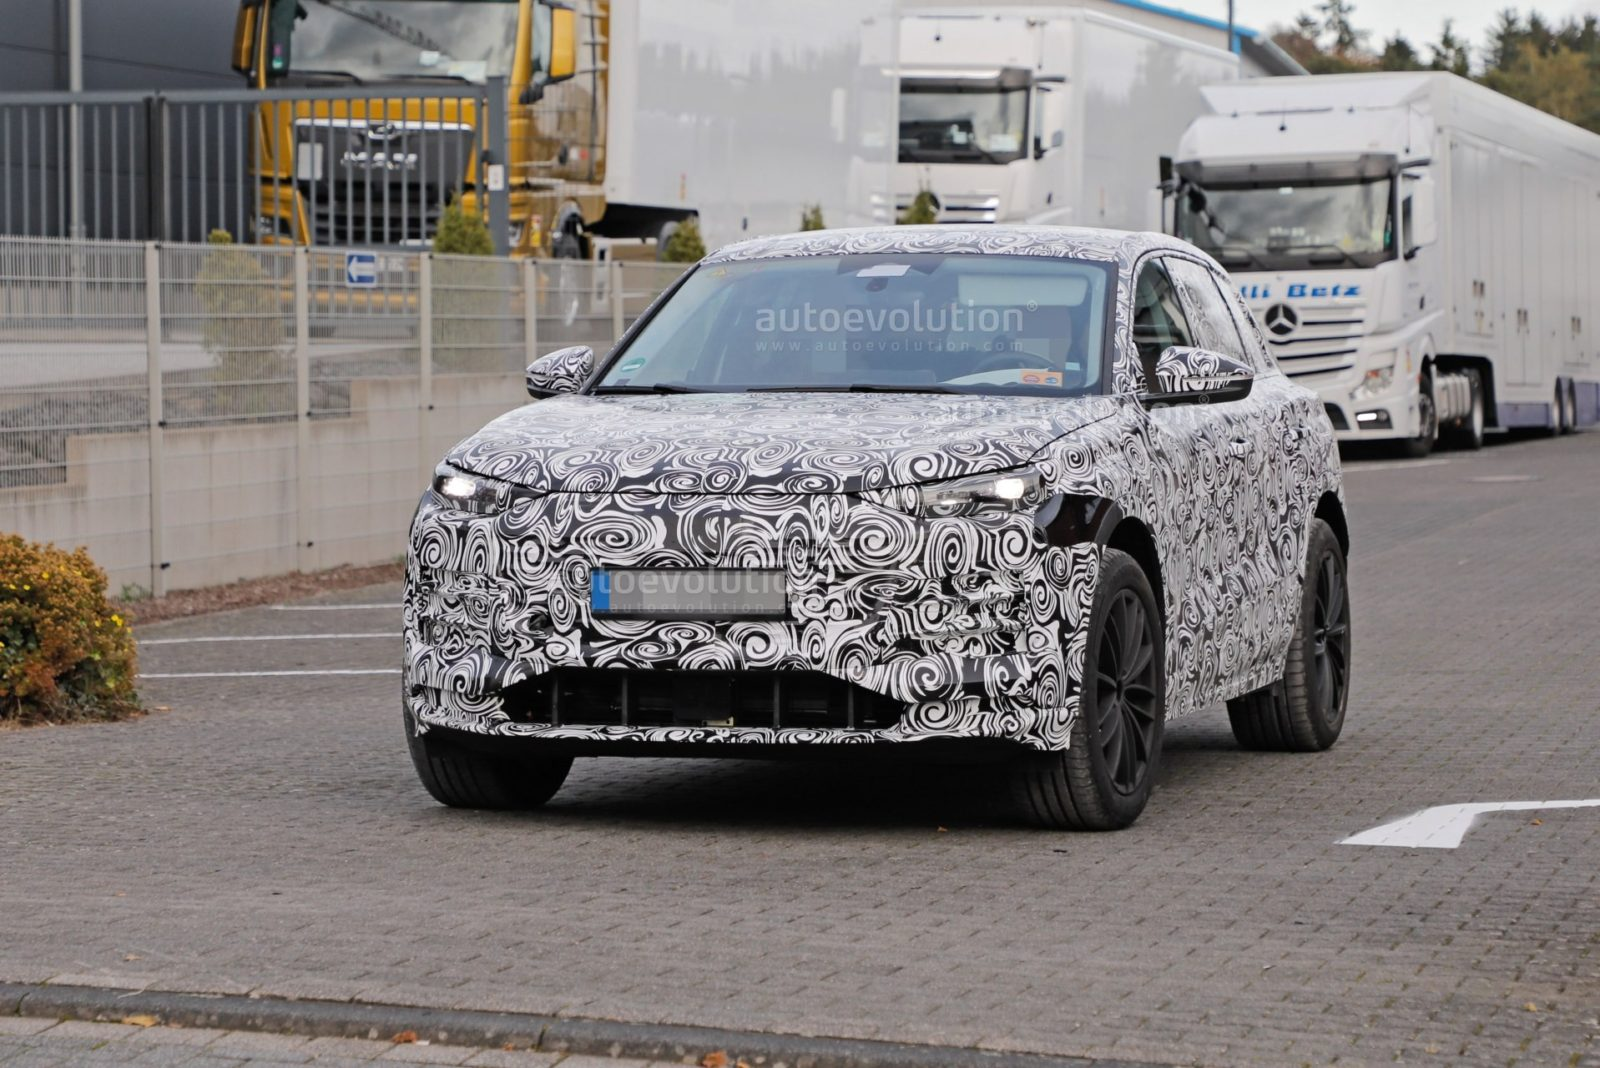 2023-audi-q6-e-tron-prototype-spied-wearing-full-camouflage,-set-for-2022-reveal